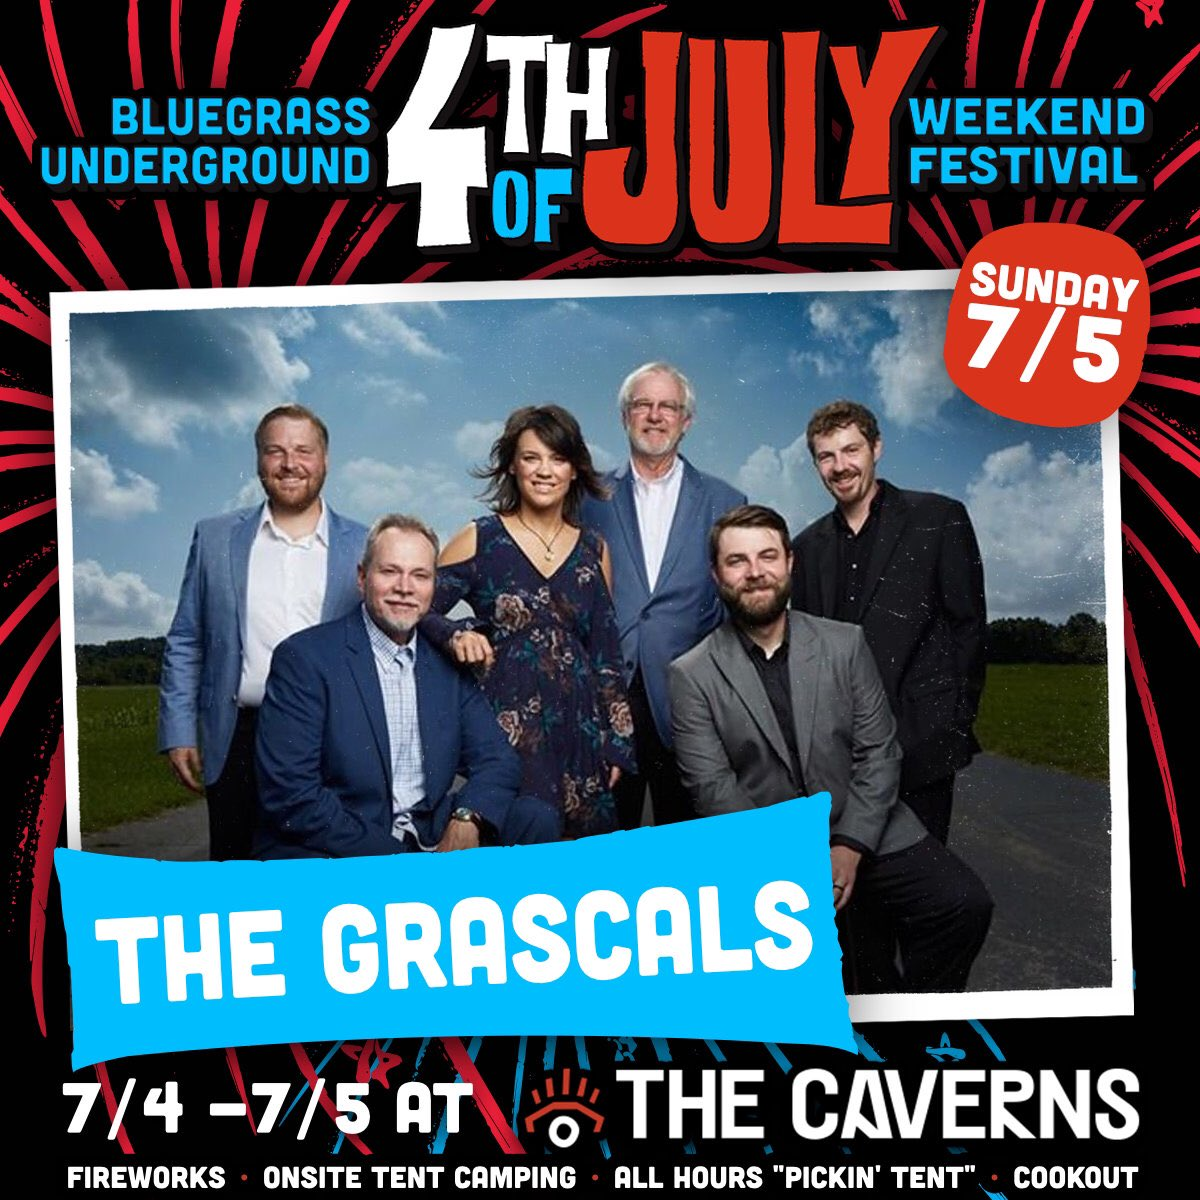 We would LOVE for you to join us for @BluegrassUnderg's 4th of July Festival this summer! We will see you at @thecaverns as we celebrate Independence Day together!    Get tickets here: https://www.eventbrite.com/e/bluegrass-underground-4th-of-july-weekend-festival-tickets-93376382273 …  #4thofjulyfest #bluegrassunderground #thecavernstn #grascalspic.twitter.com/KEqXBGy7C4